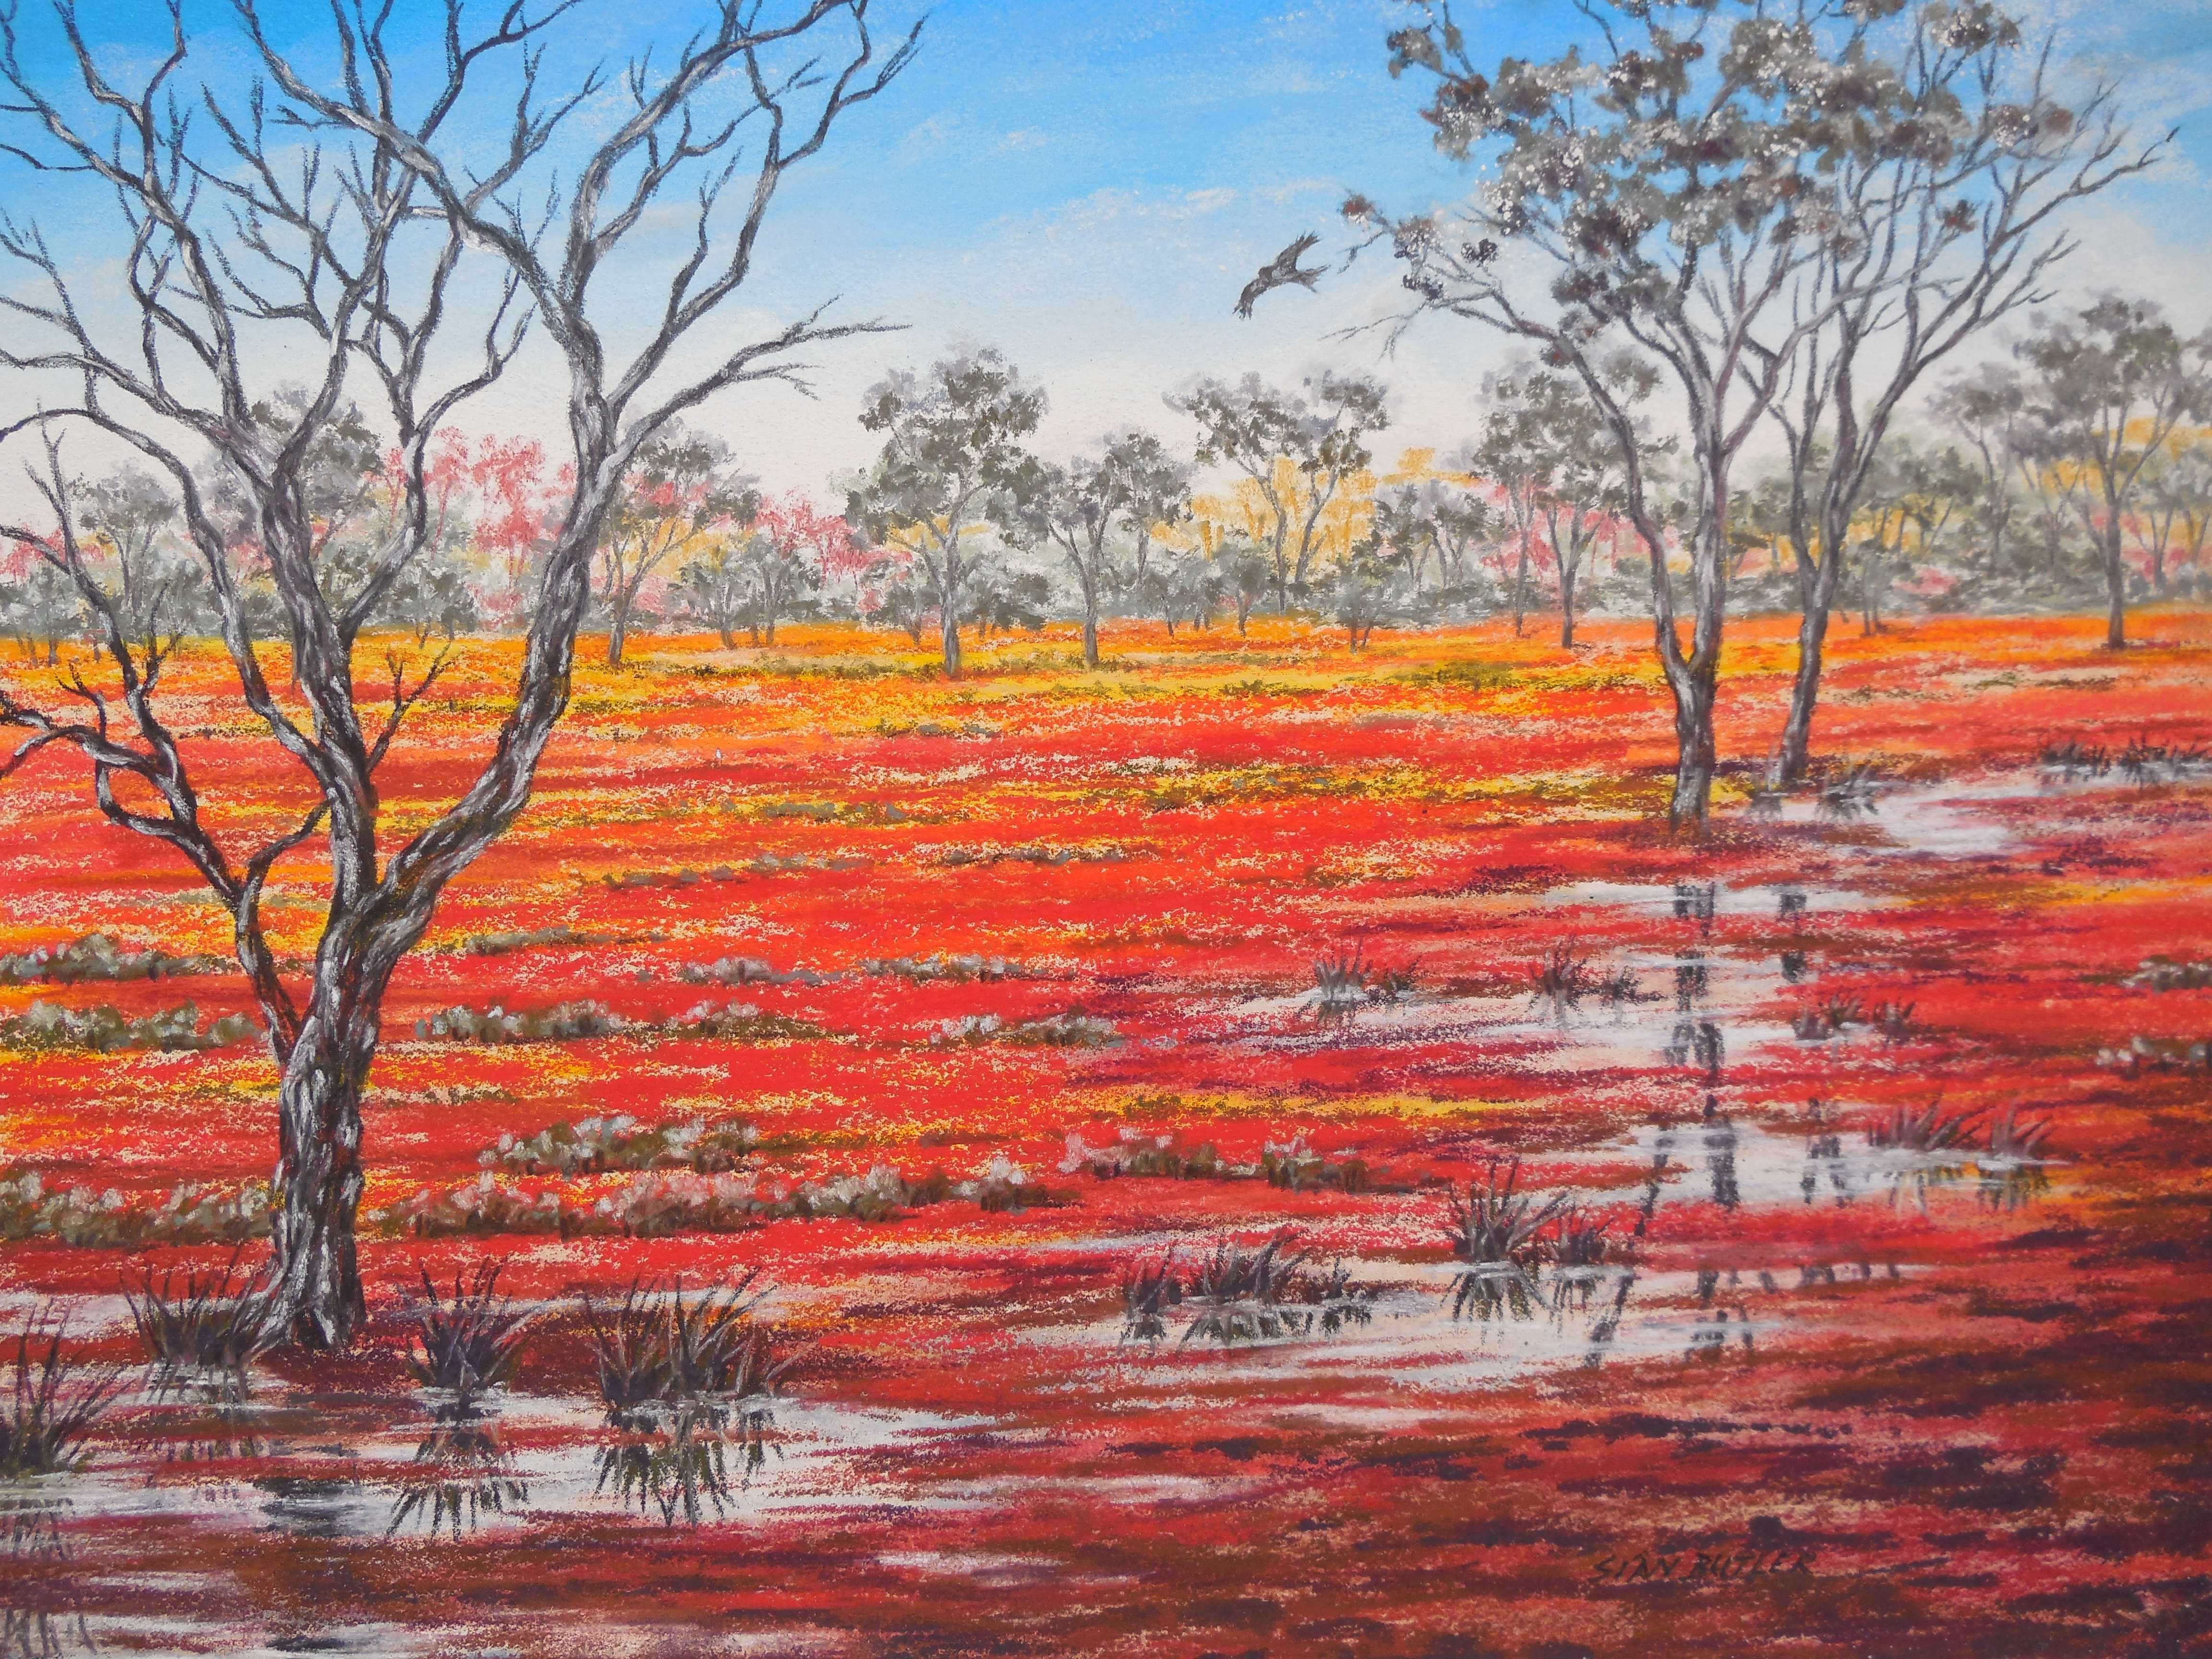 Australian Outback Paintings 2 Tracts4free